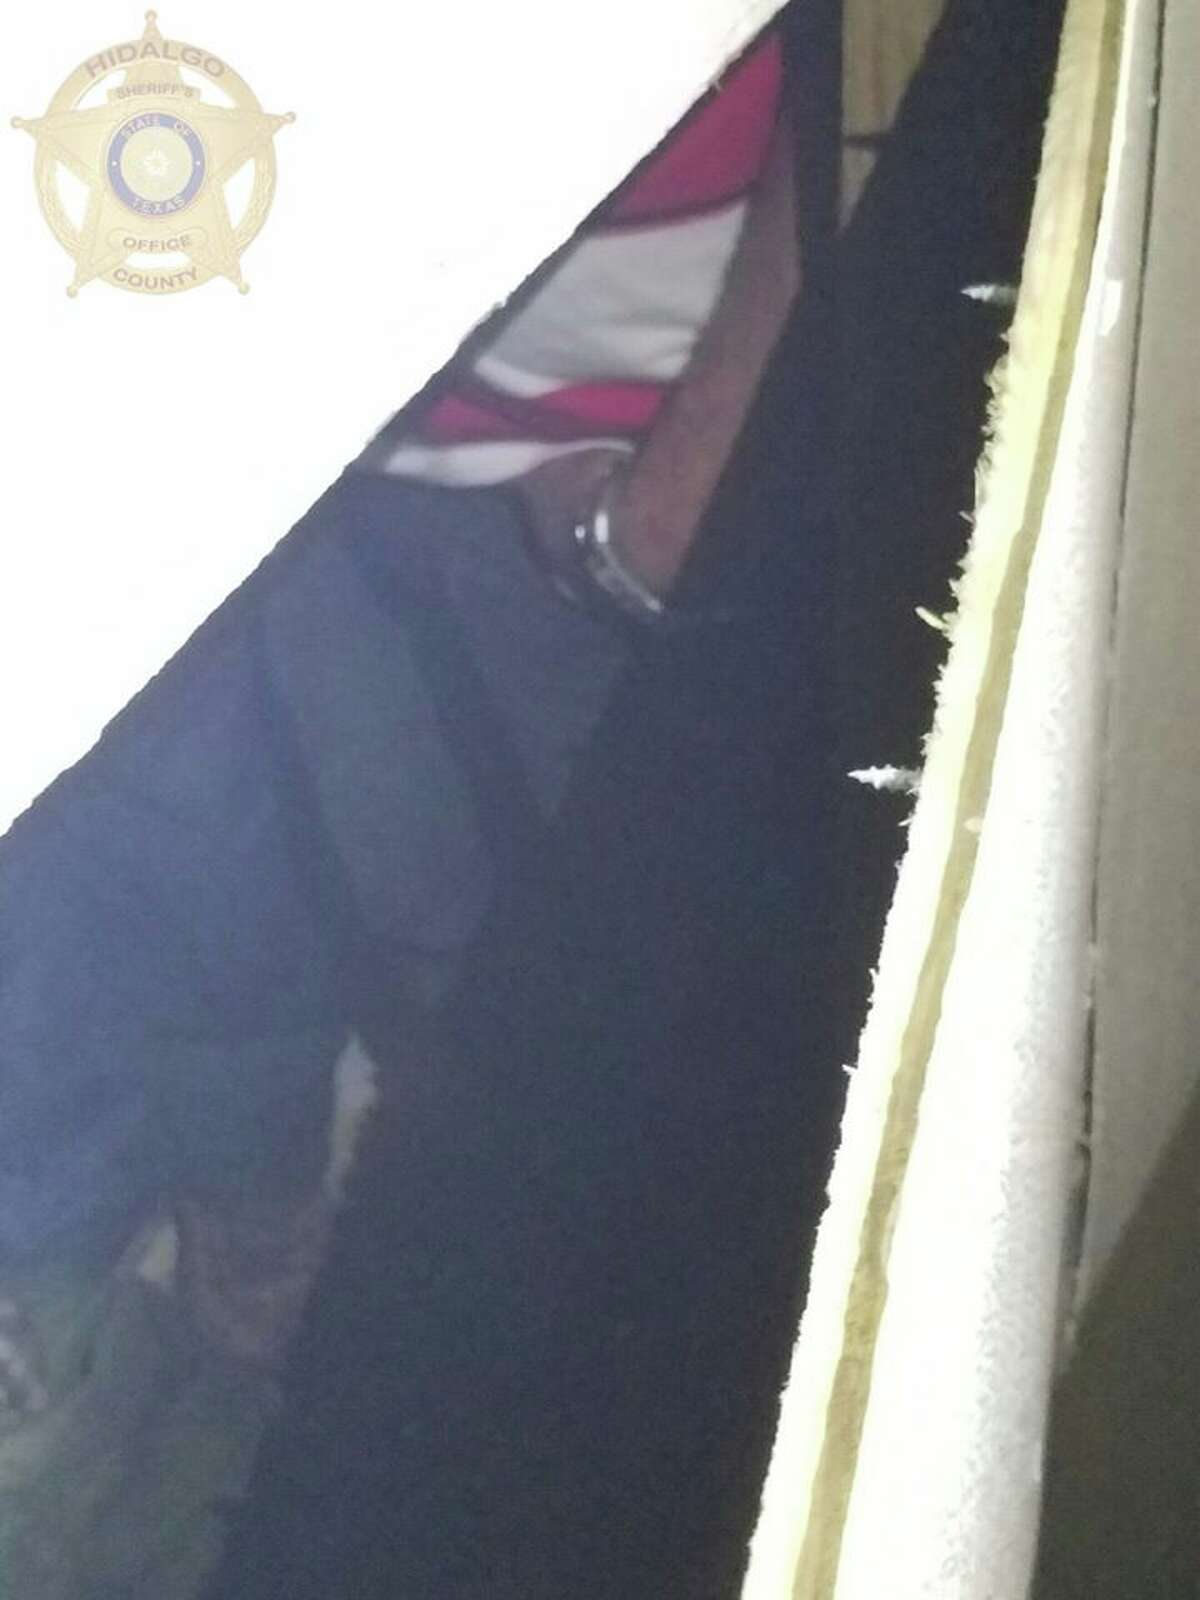 On Thursday night, U.S. Border Patrol agents were alerted to 25 undocumented immigrants who were found behind a false door on a tractor trailer in Edinburg, according to theHidalgo County Sheriff's Office.